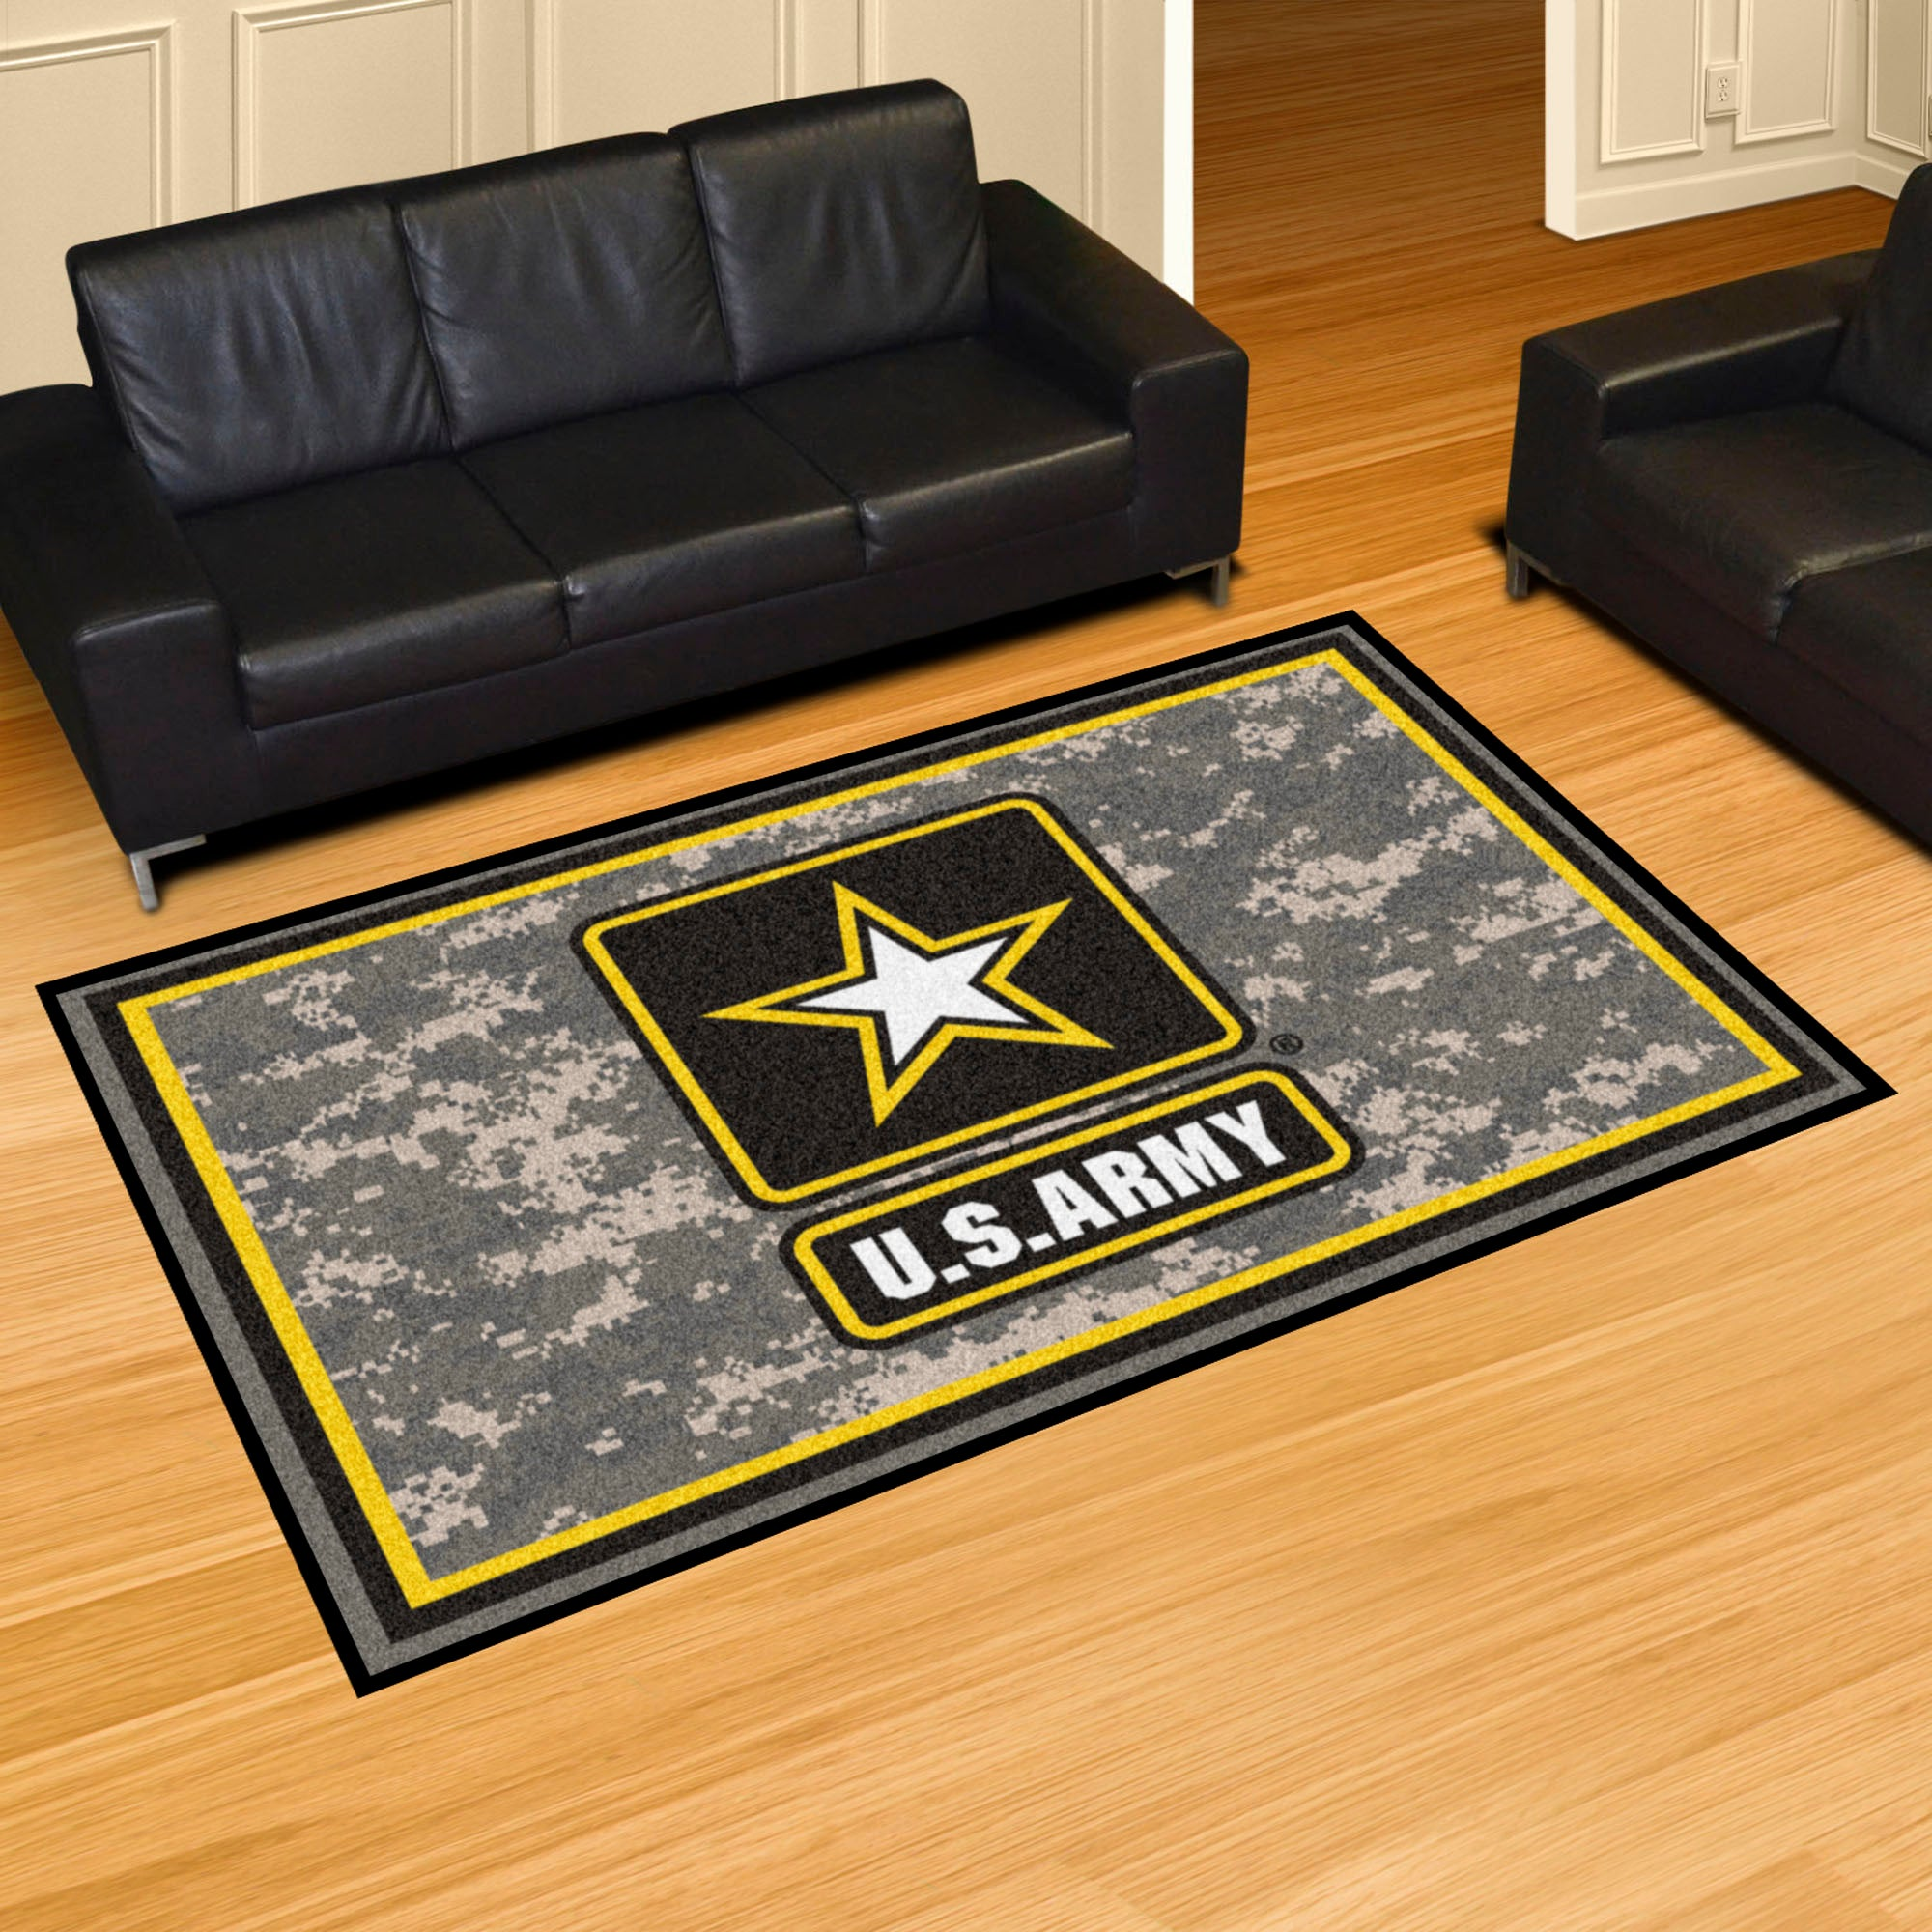 U.S. Army Ultra Plush Area Rug  NFL Area Rug - Fan Rugs